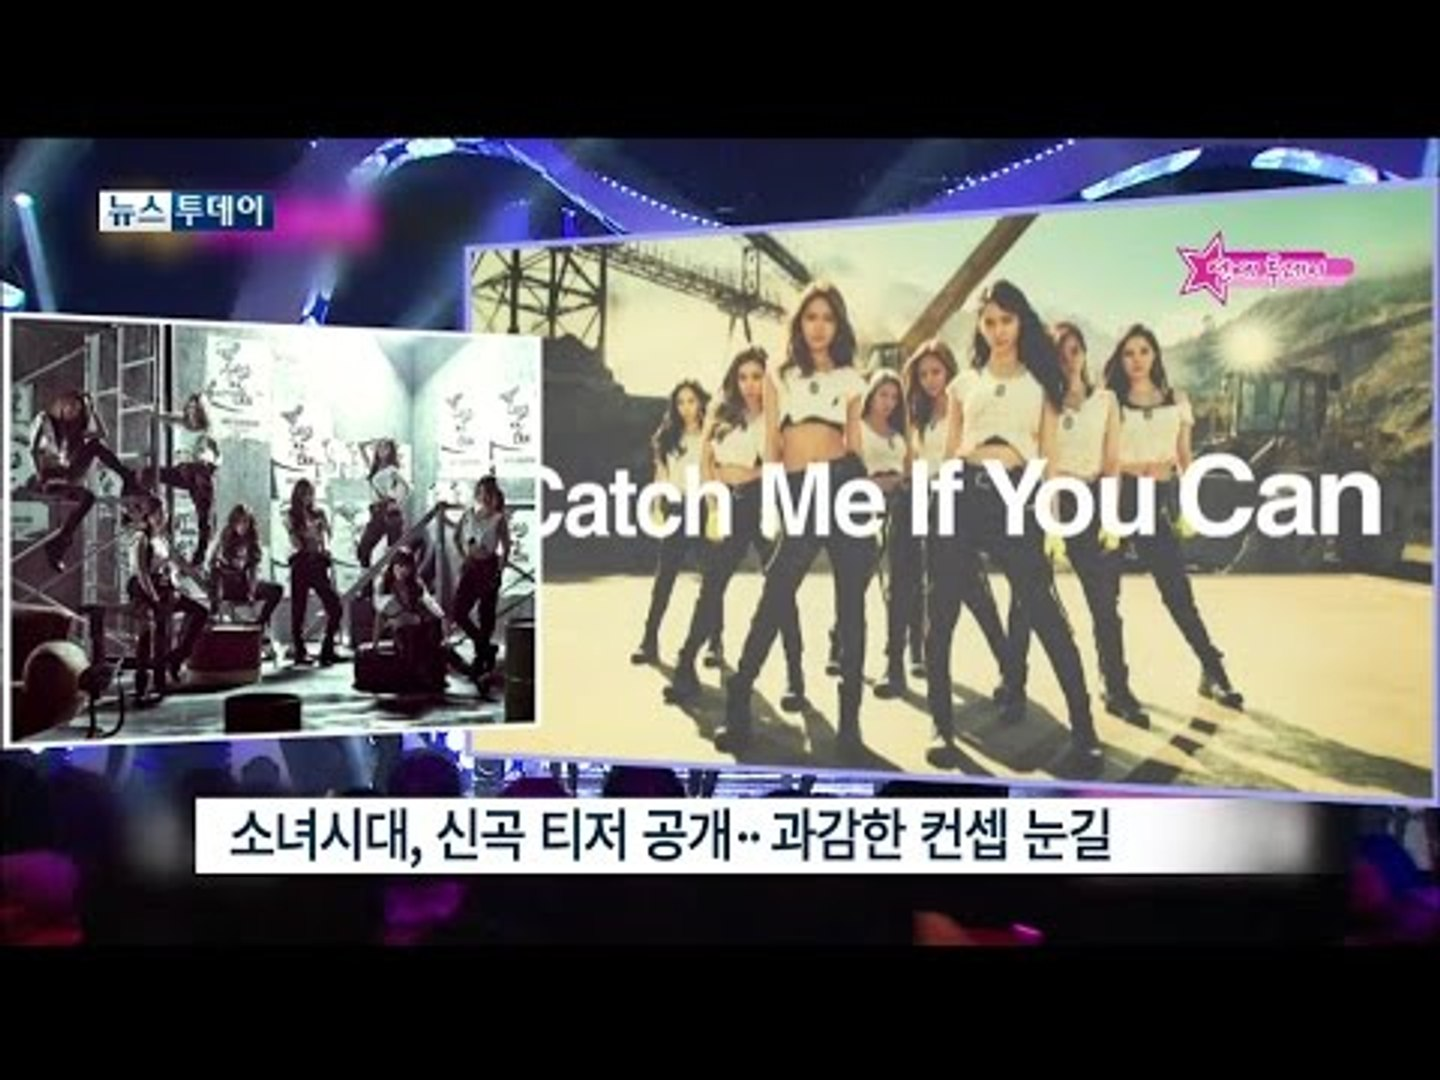 【TVPP】SNSD - Teaser of New Song, 소녀시대 - 과감한 컨셉의 'Catch Me If You Can' 신곡 티저 공개! @ News Today